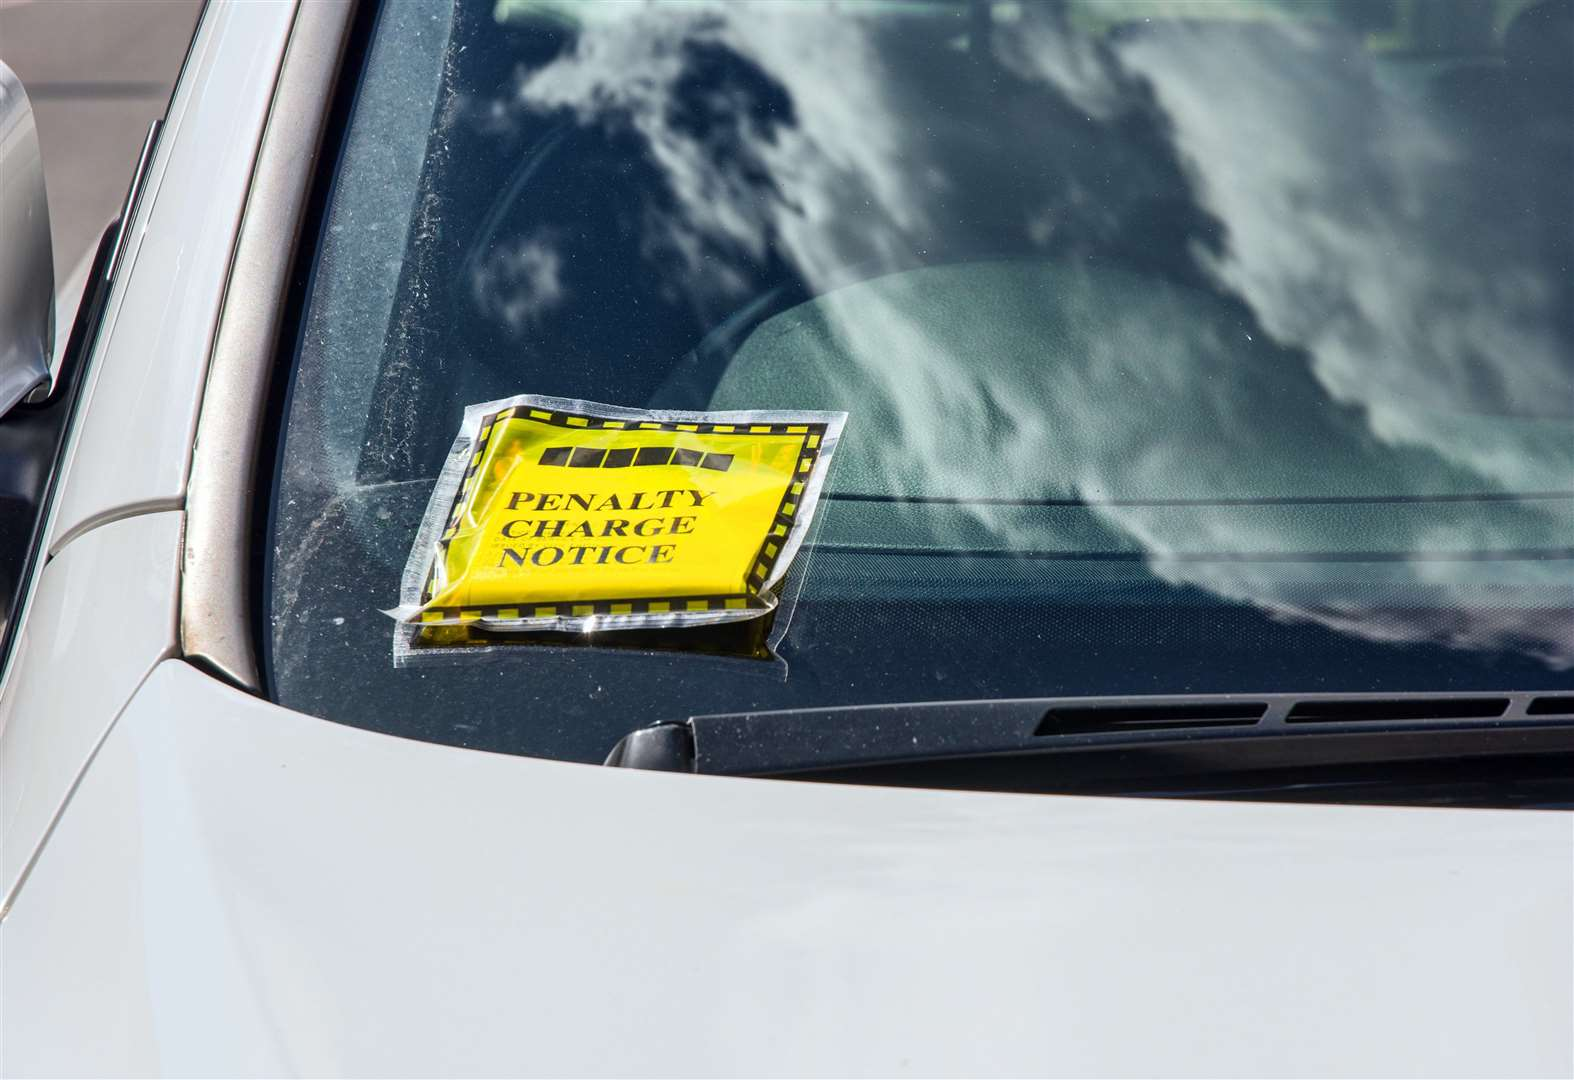 Tougher enforcement against illegal parking in Suffolk set to take effect in 2020